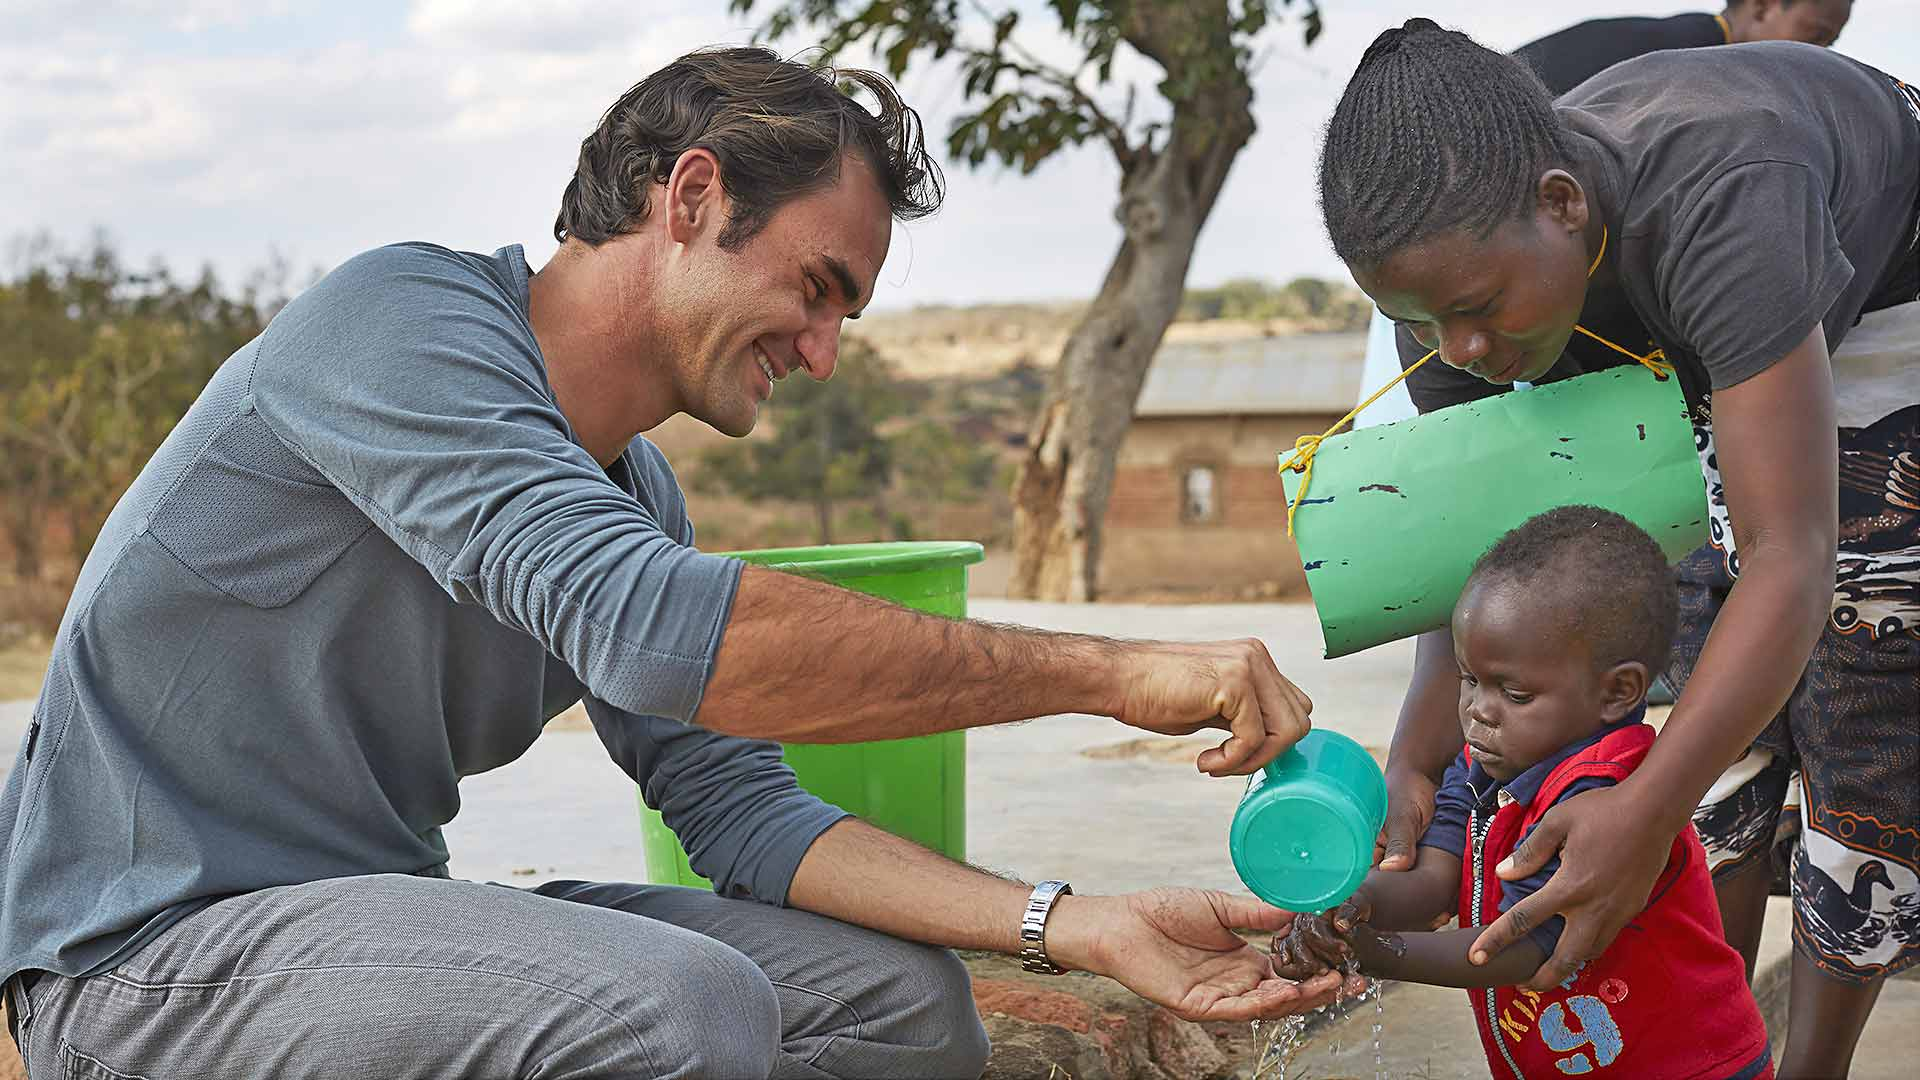 Roger Federer during a visit to Malawi